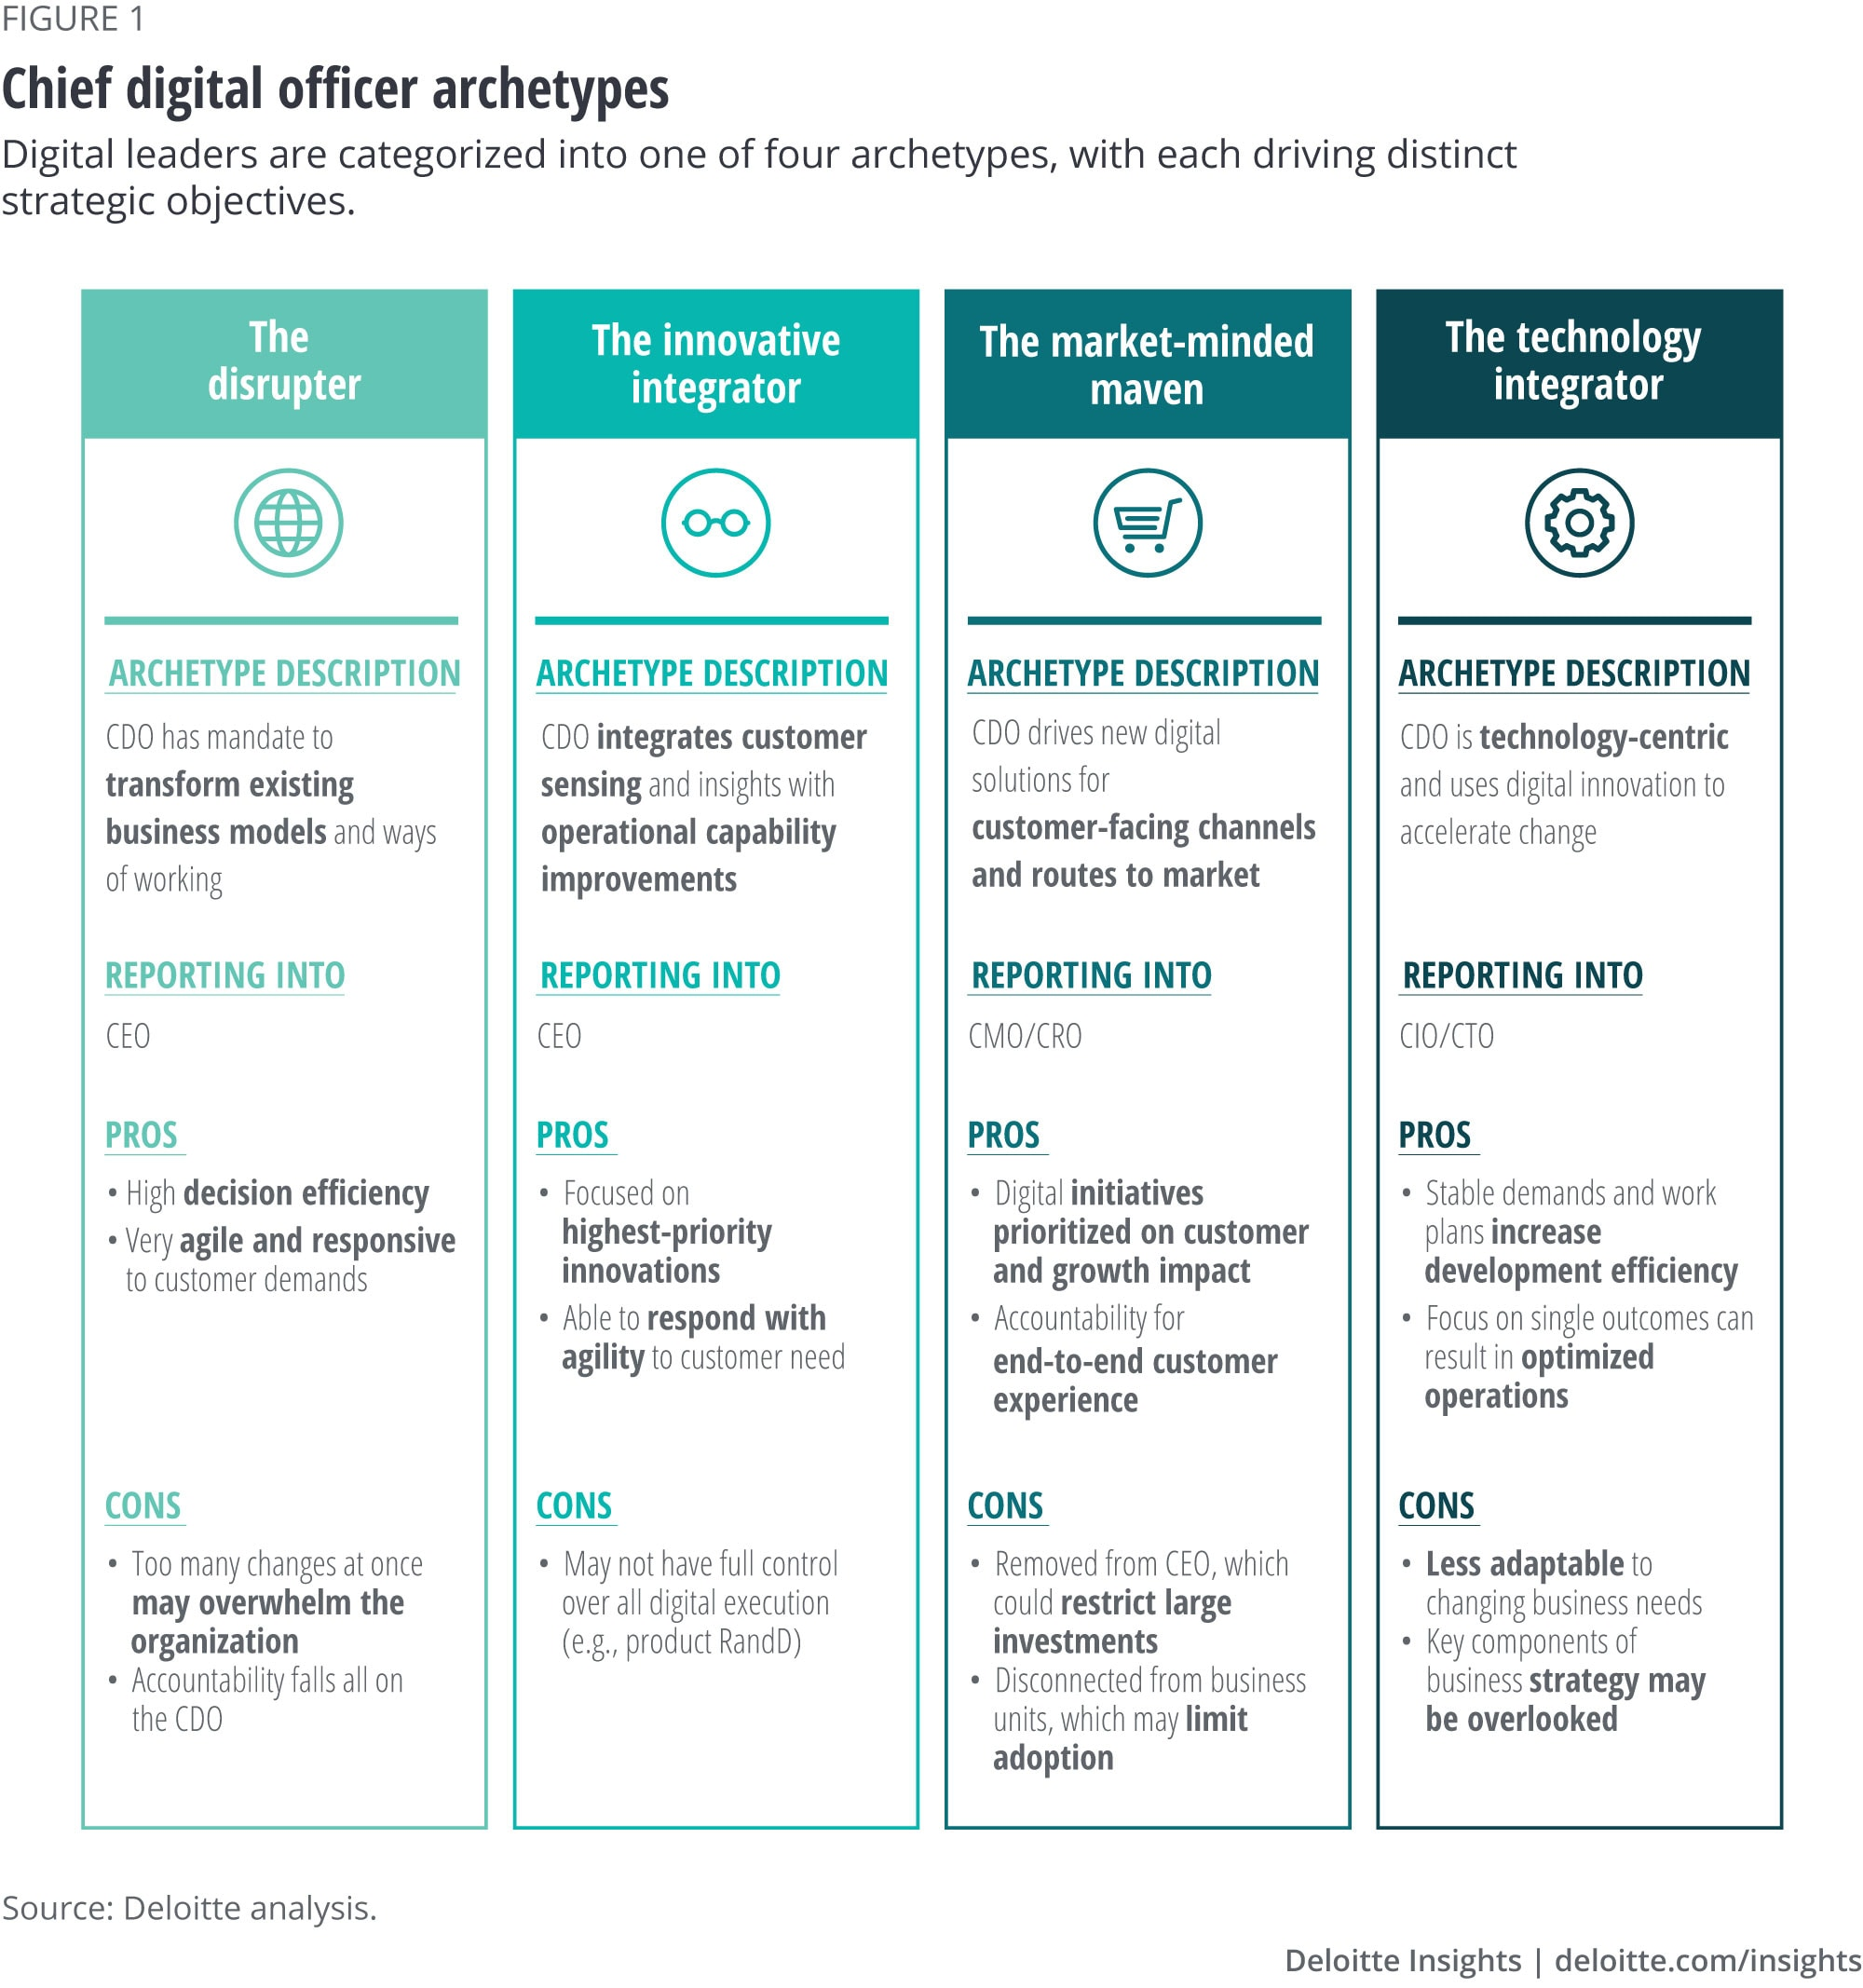 Chief digital officer archetypes